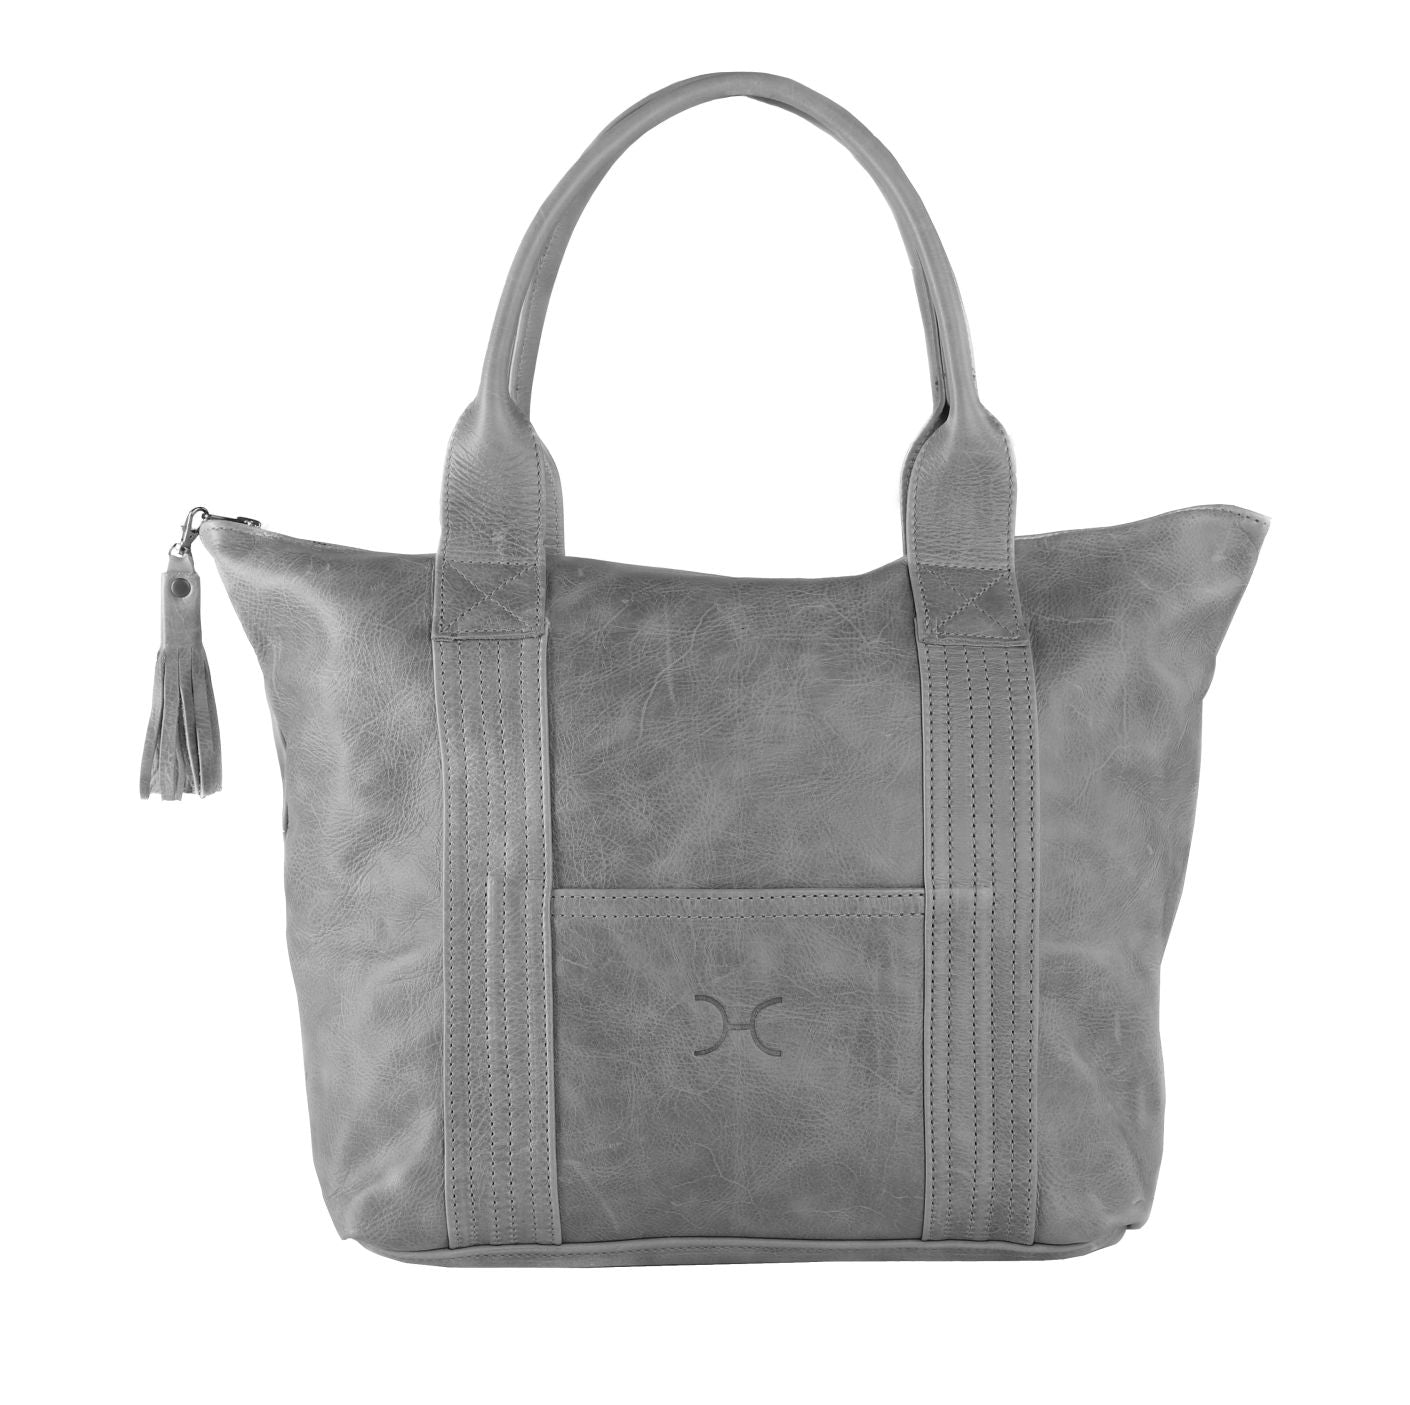 Thandana Dan Dan Bag - Grey - Zufrique Boutique